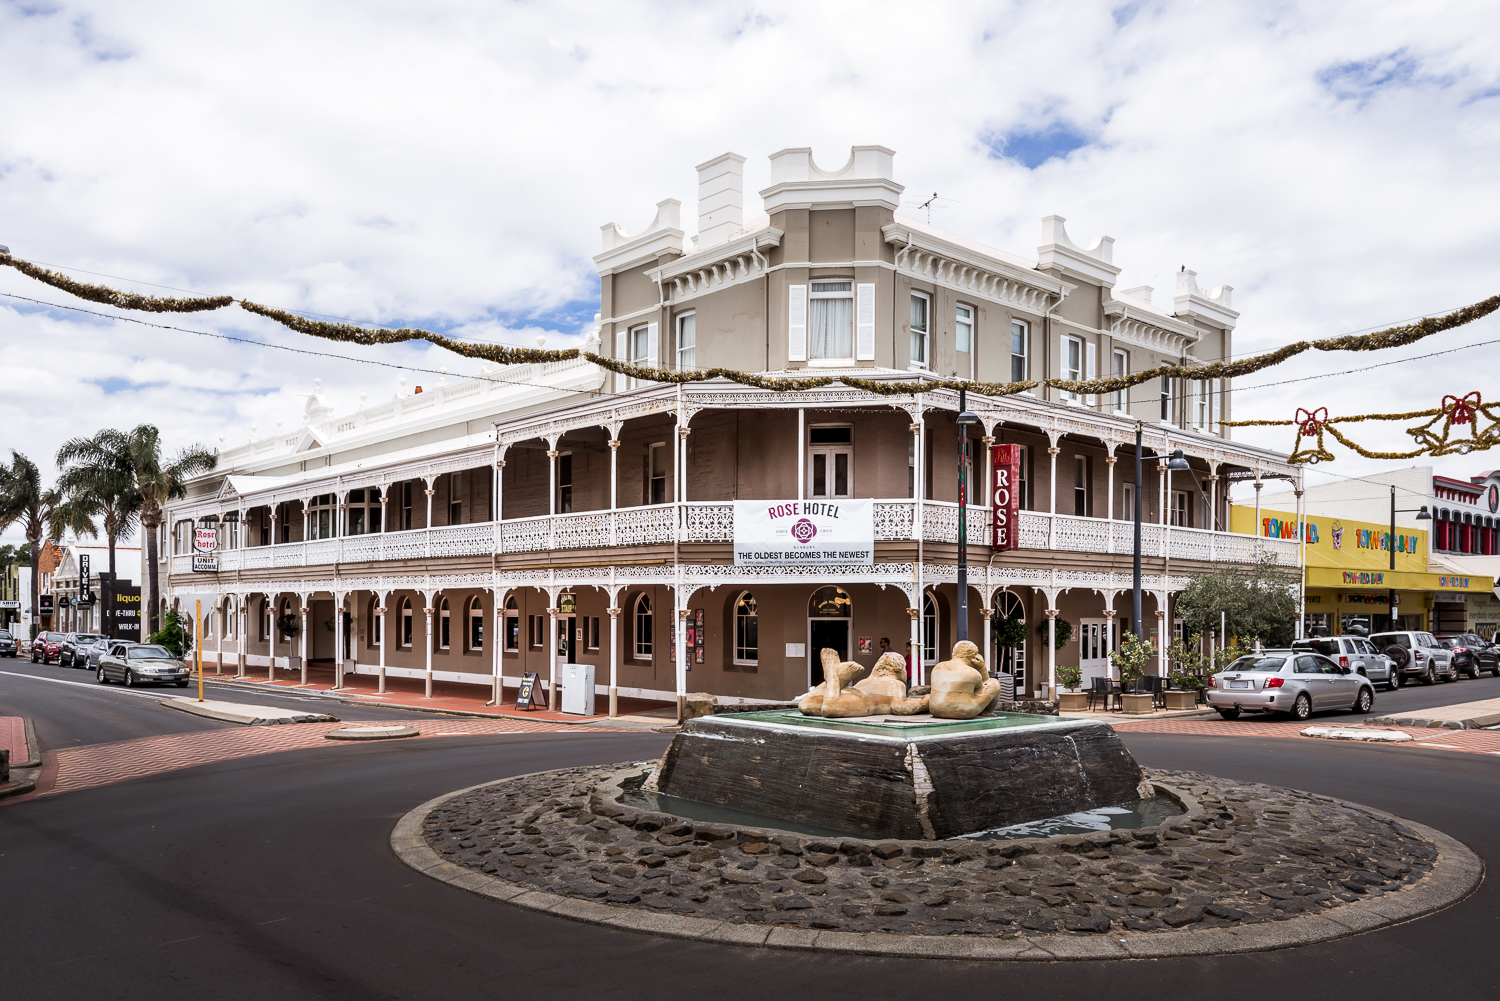 Rose Hotel Bunbury 1